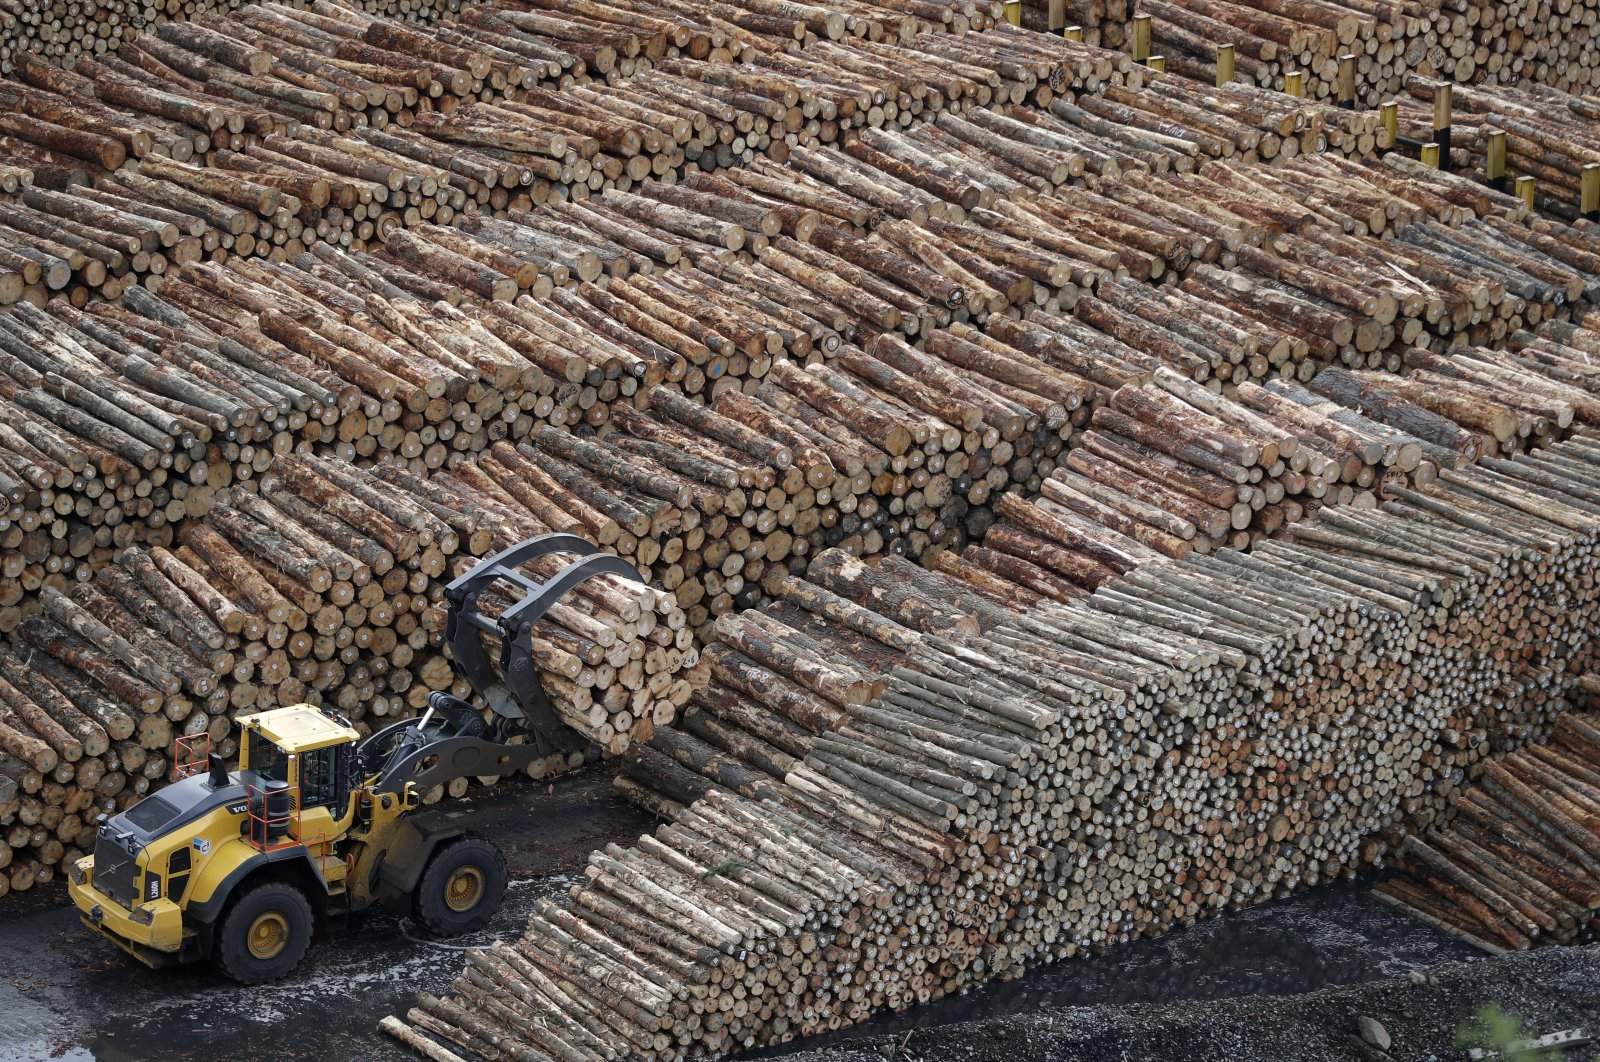 Logs are prepared for export at Lyttelton Port near Christchurch, New Zealand, June 3, 2020. (AP Photo)